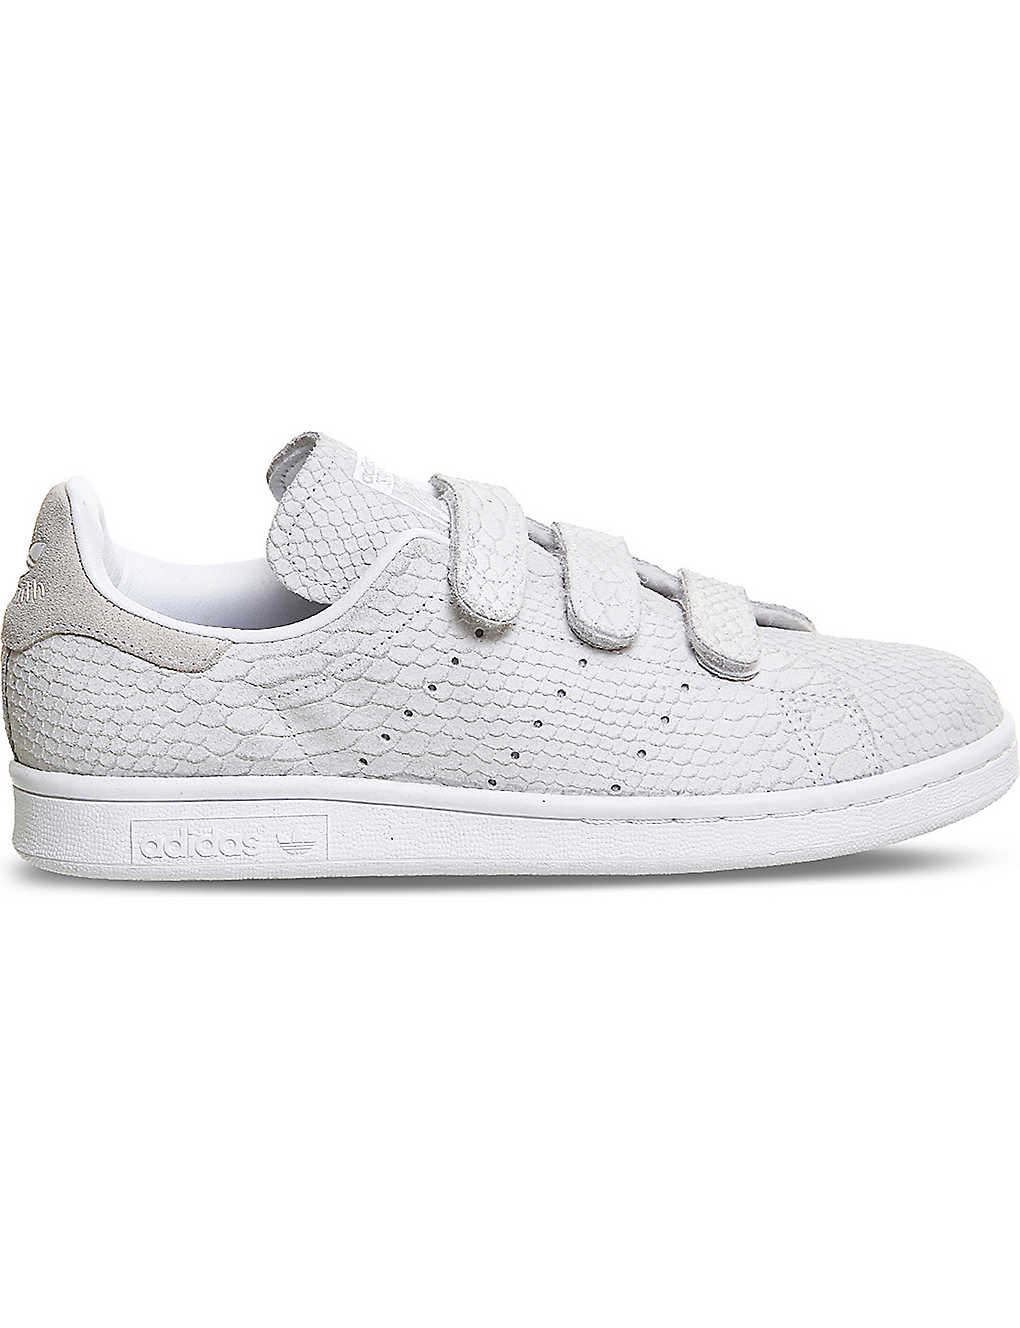 hot sale online c05fb 232f2 ADIDAS - Stan Smith CF low-top leather trainers | Selfridges.com